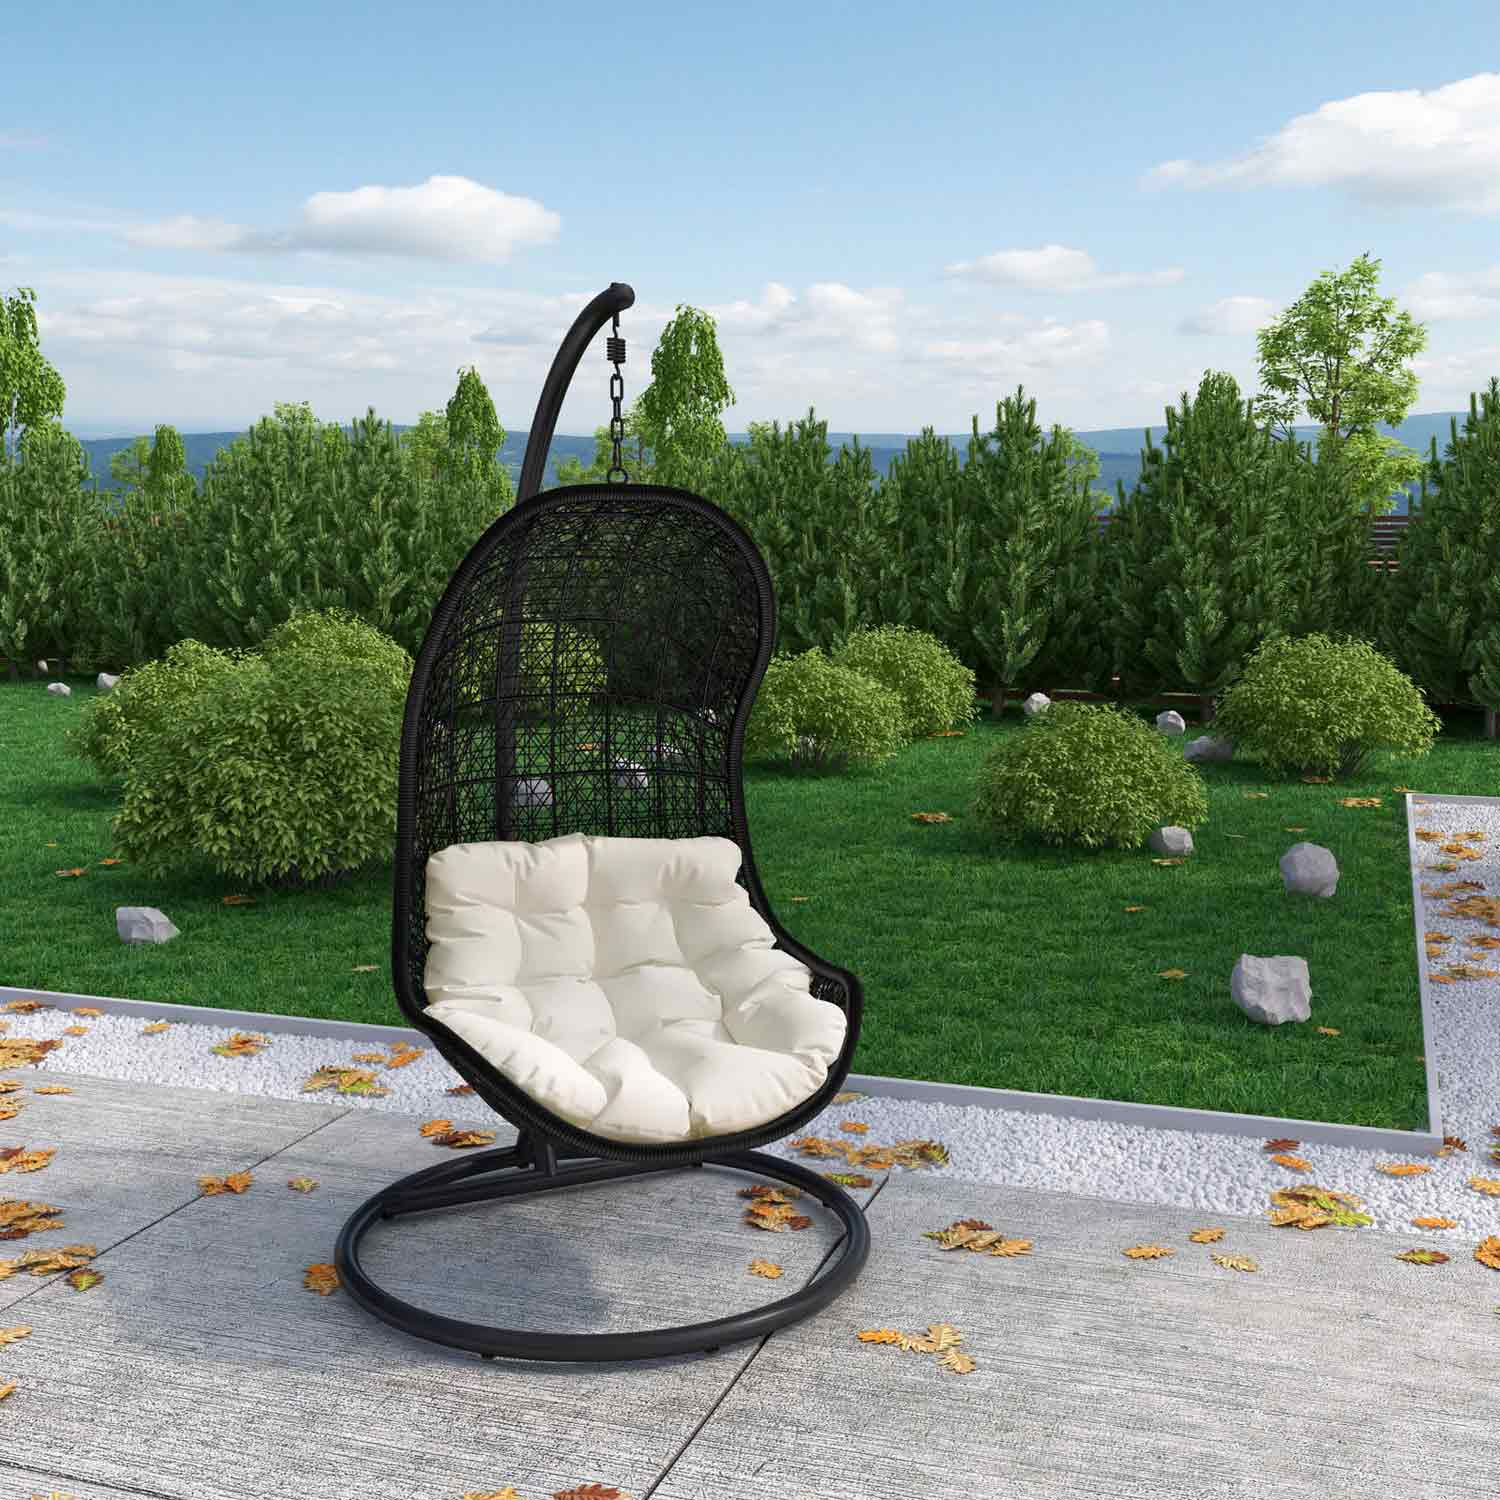 Modway Parlay Swing Outdoor Patio Lounge Chair - Espresso/White